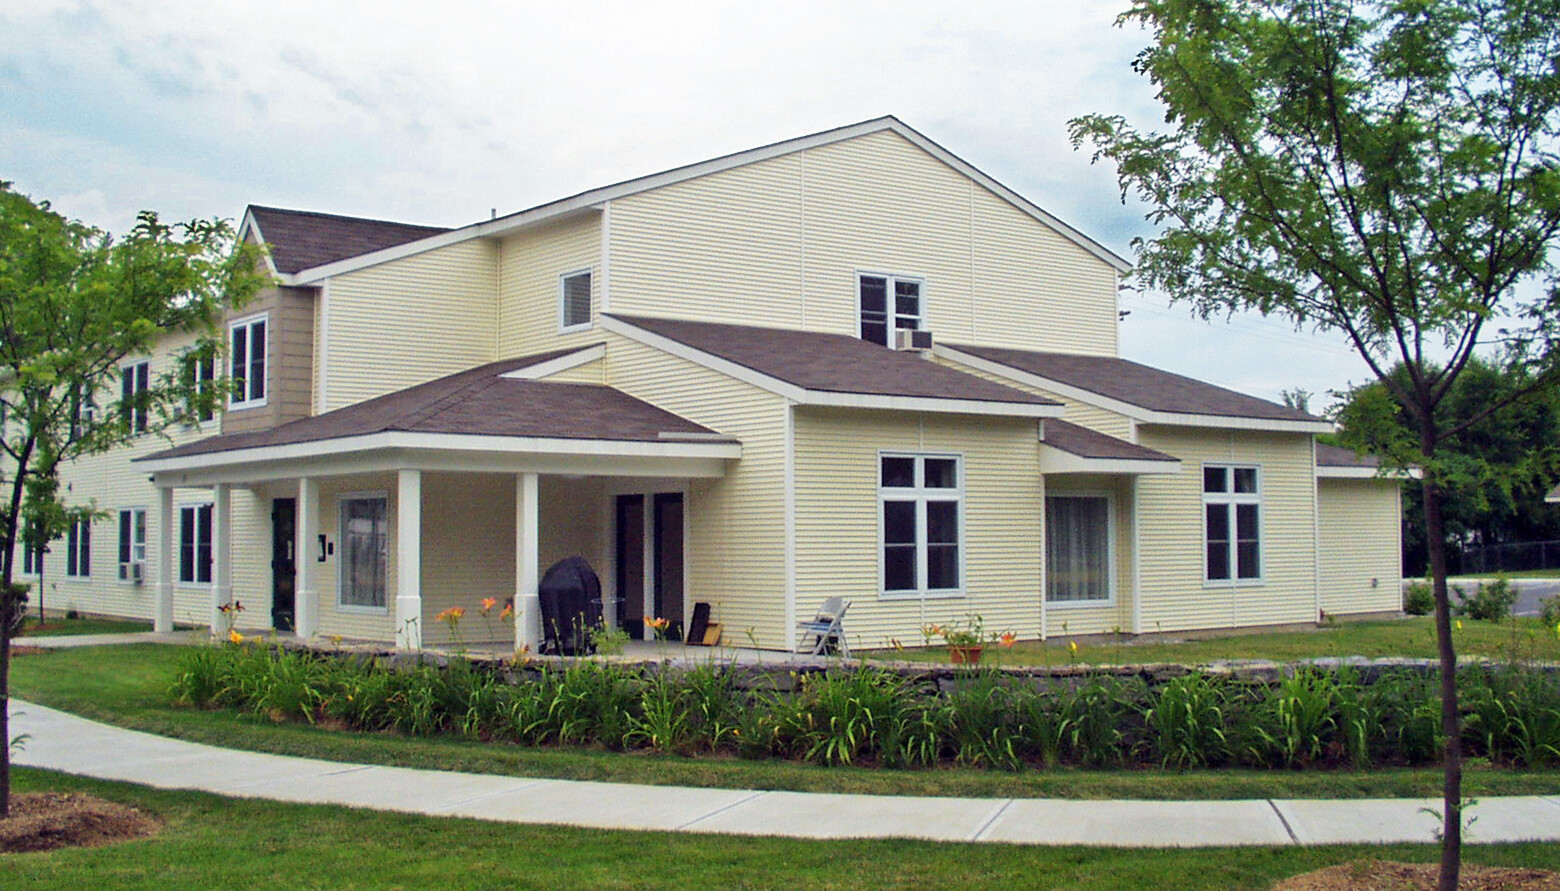 South Burlington Community Housing